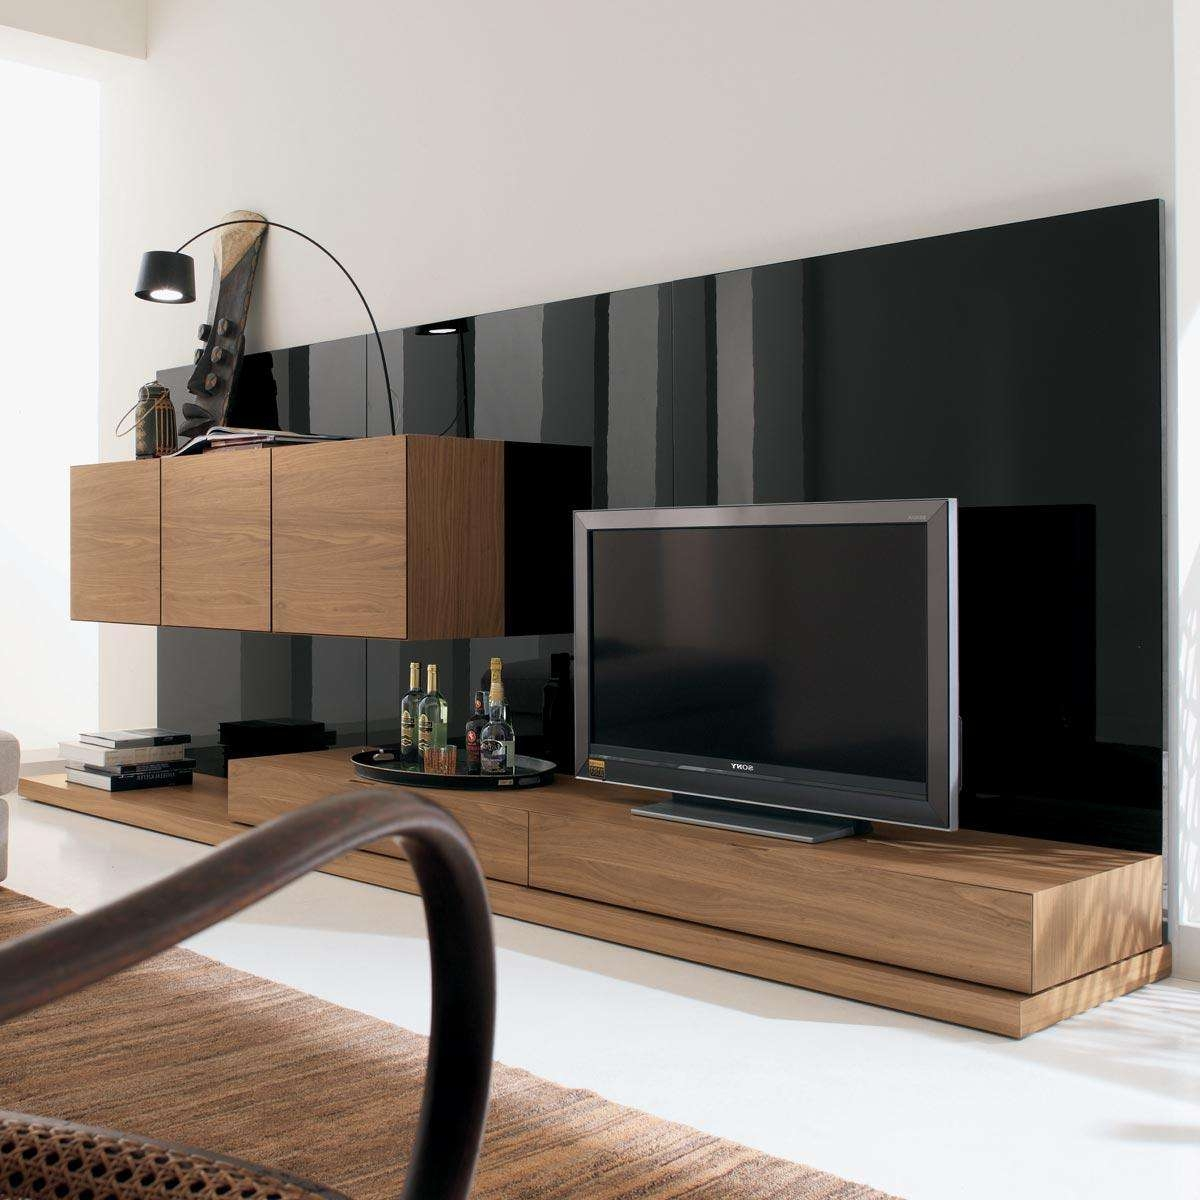 Modern Nature Wood Big Screen Tv Stand Wall Mounted Living Room Regarding Long Black Tv Stands (View 10 of 15)